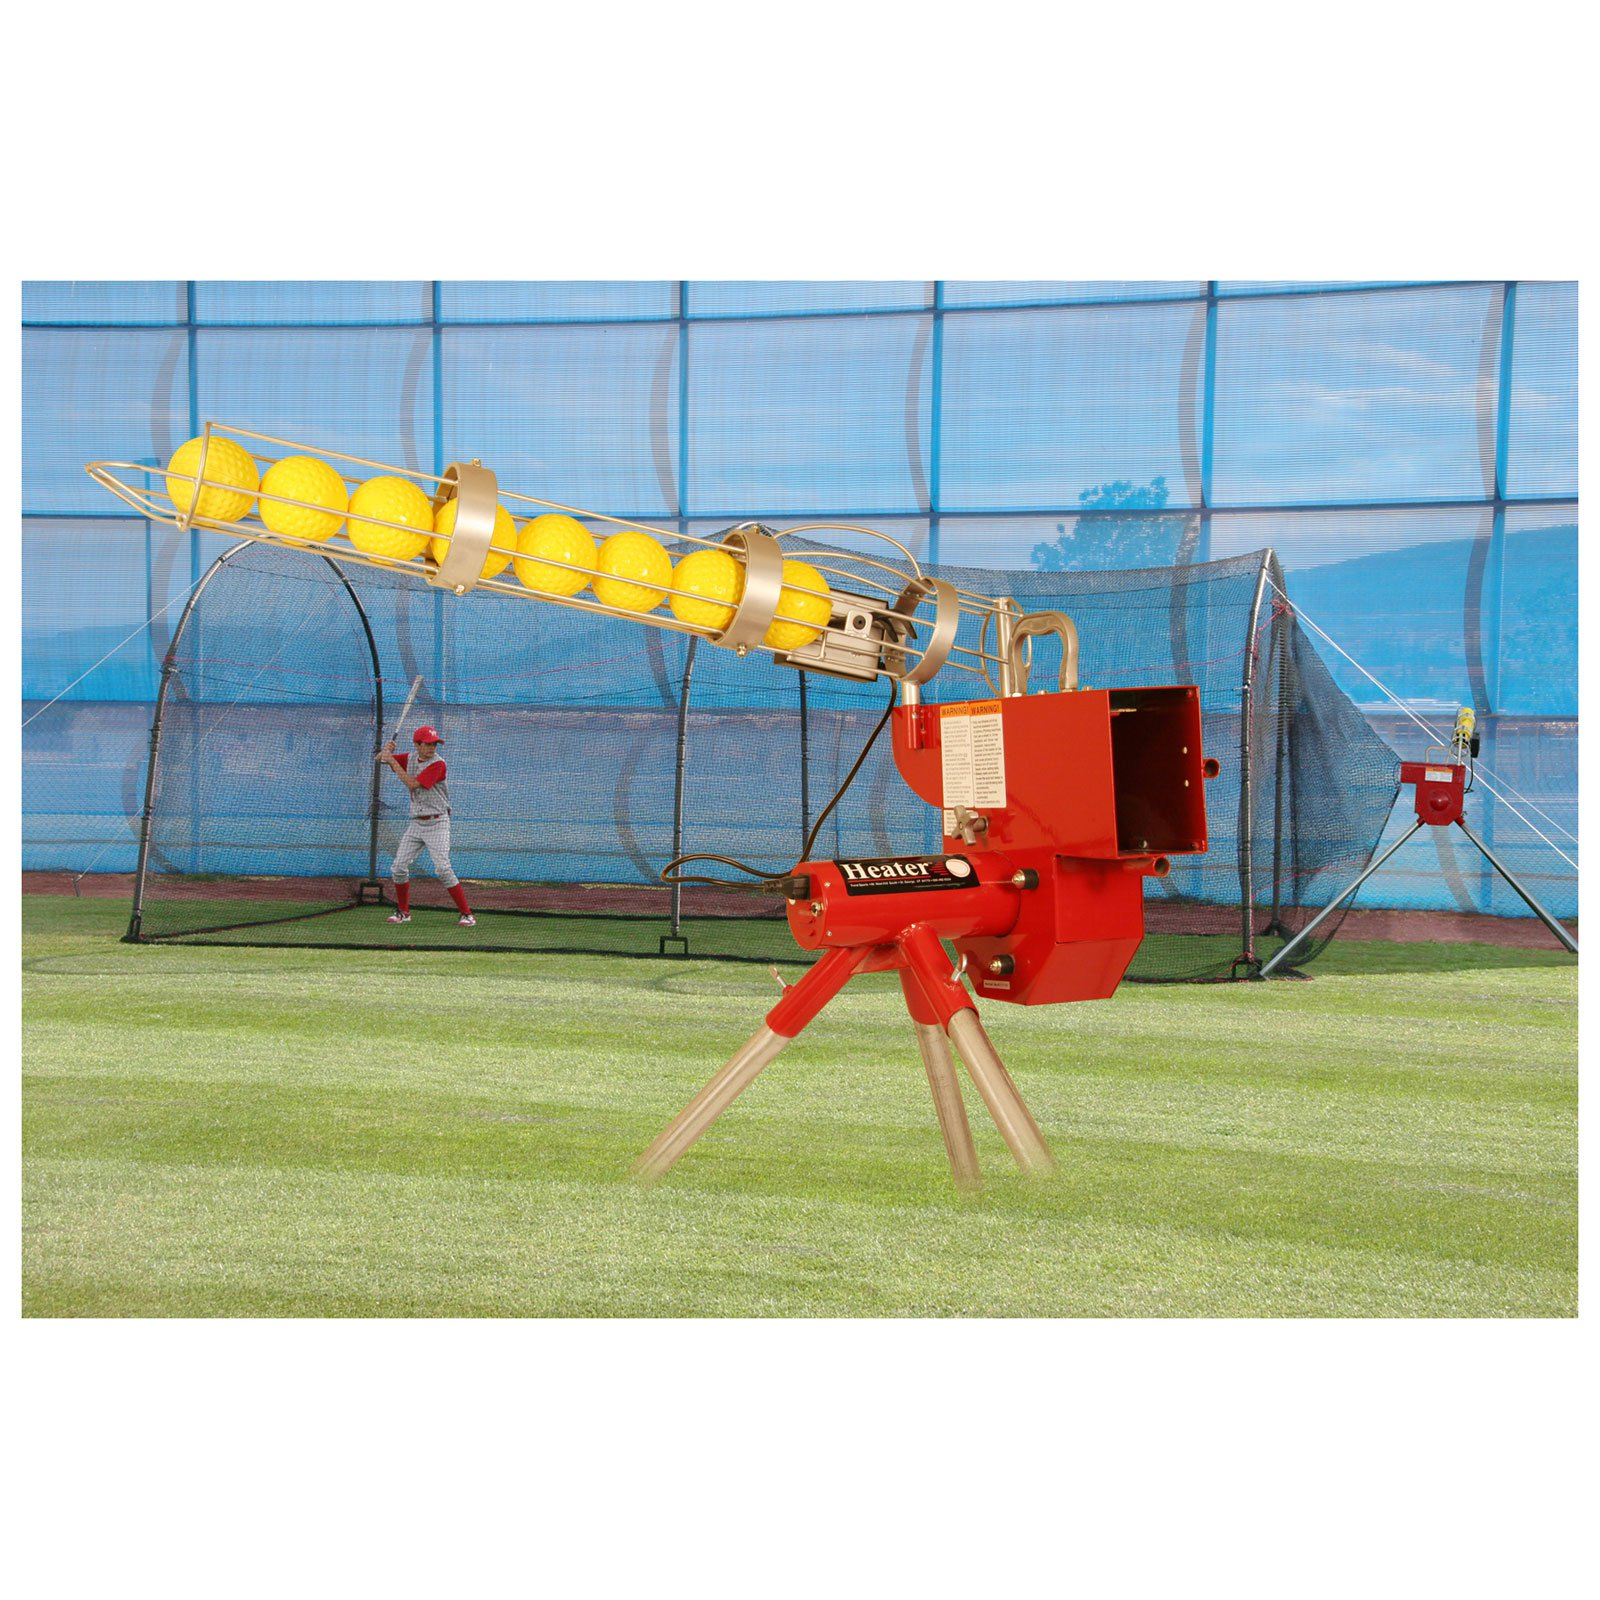 Trend Sports Heater Softball Pitching Machine And Xtender